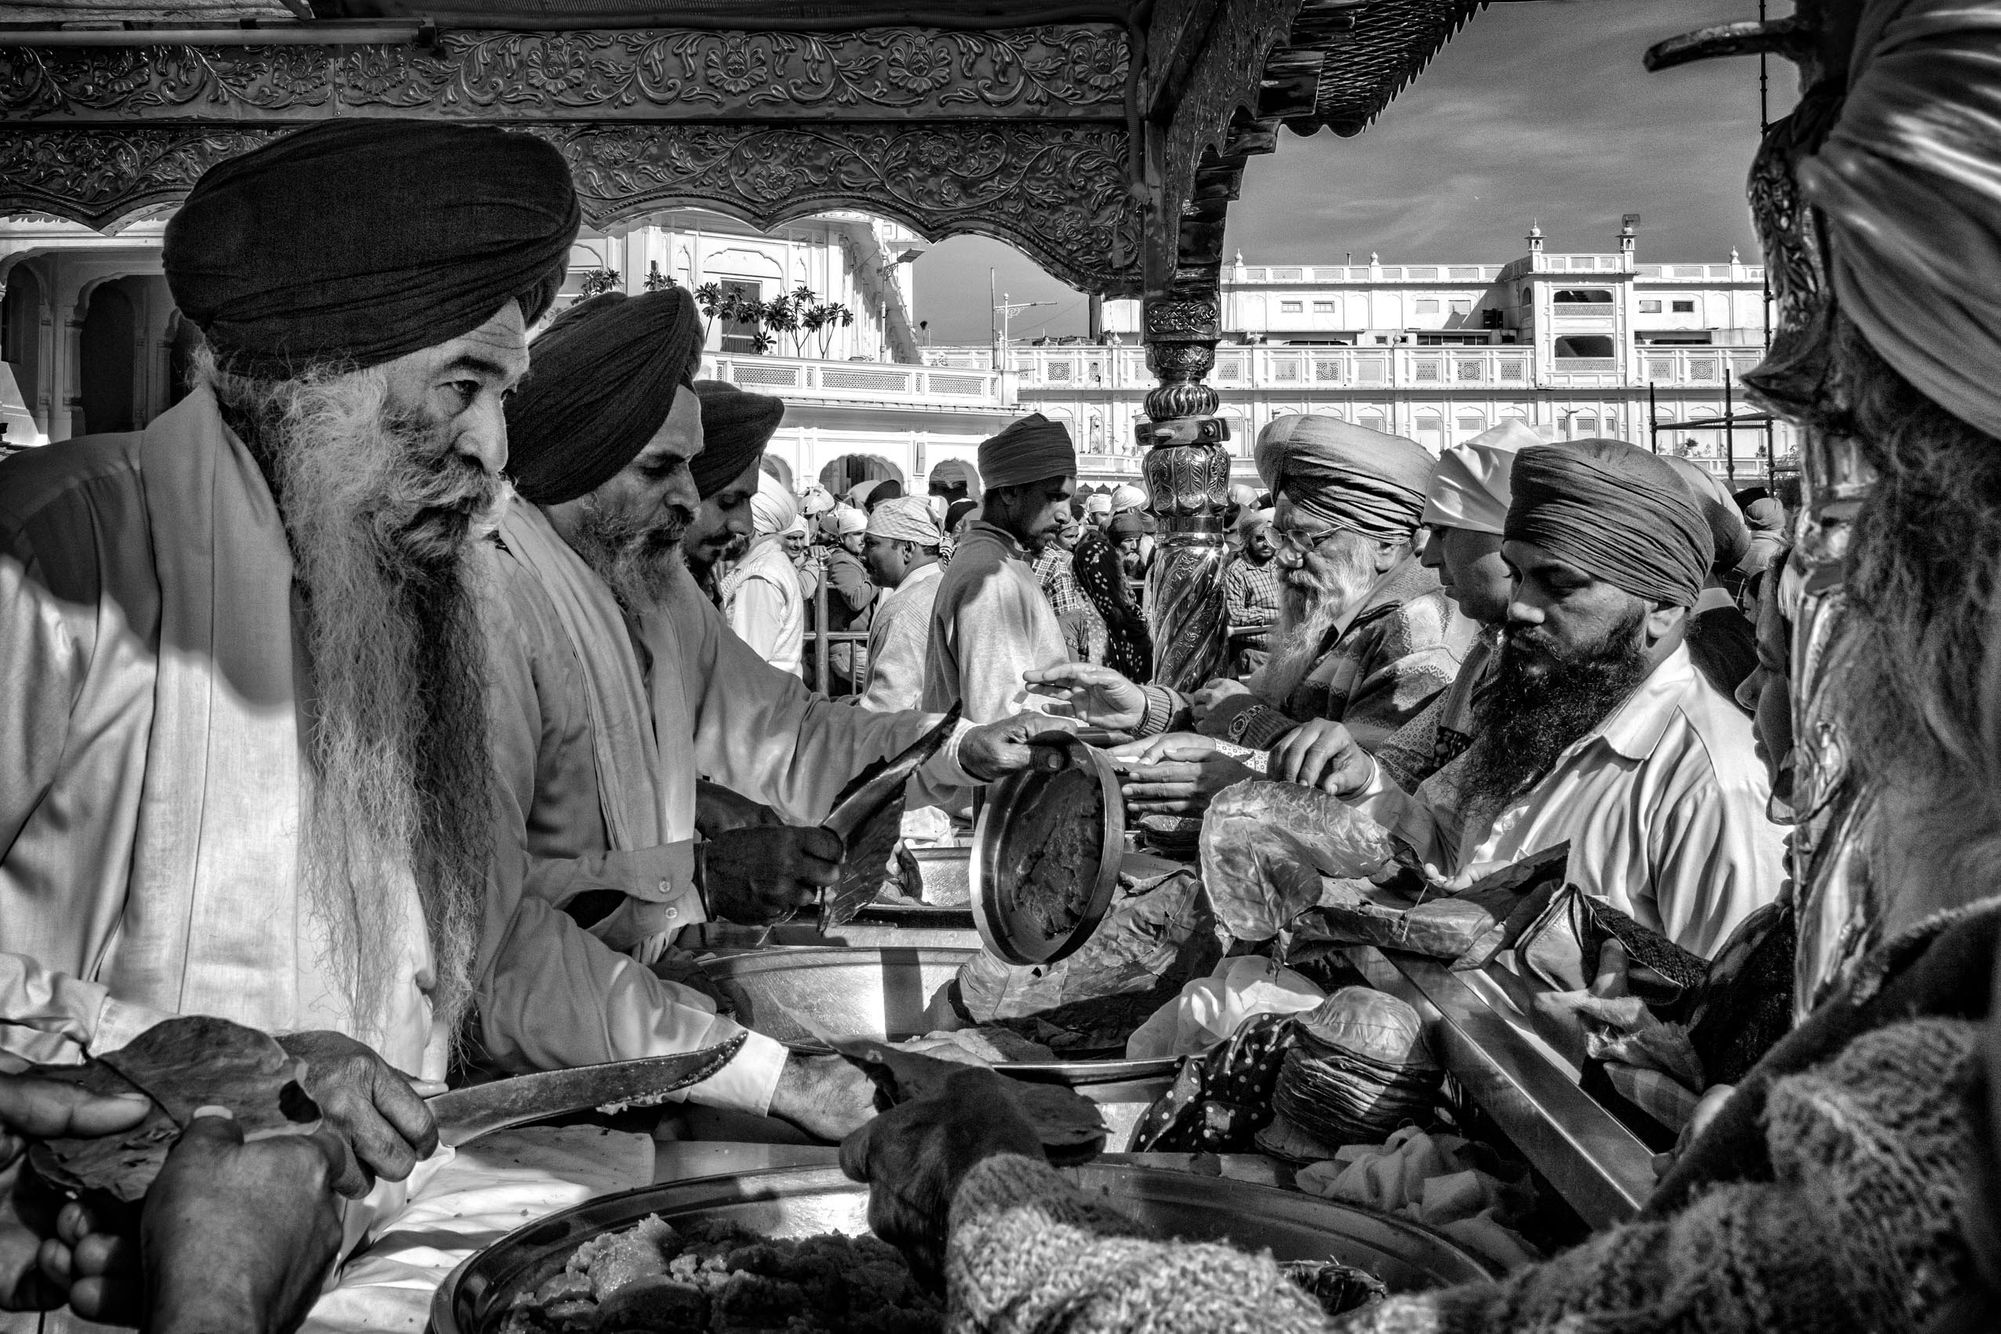 INDIANS AT WORK VI:  Religious Business and Spiritual Labor